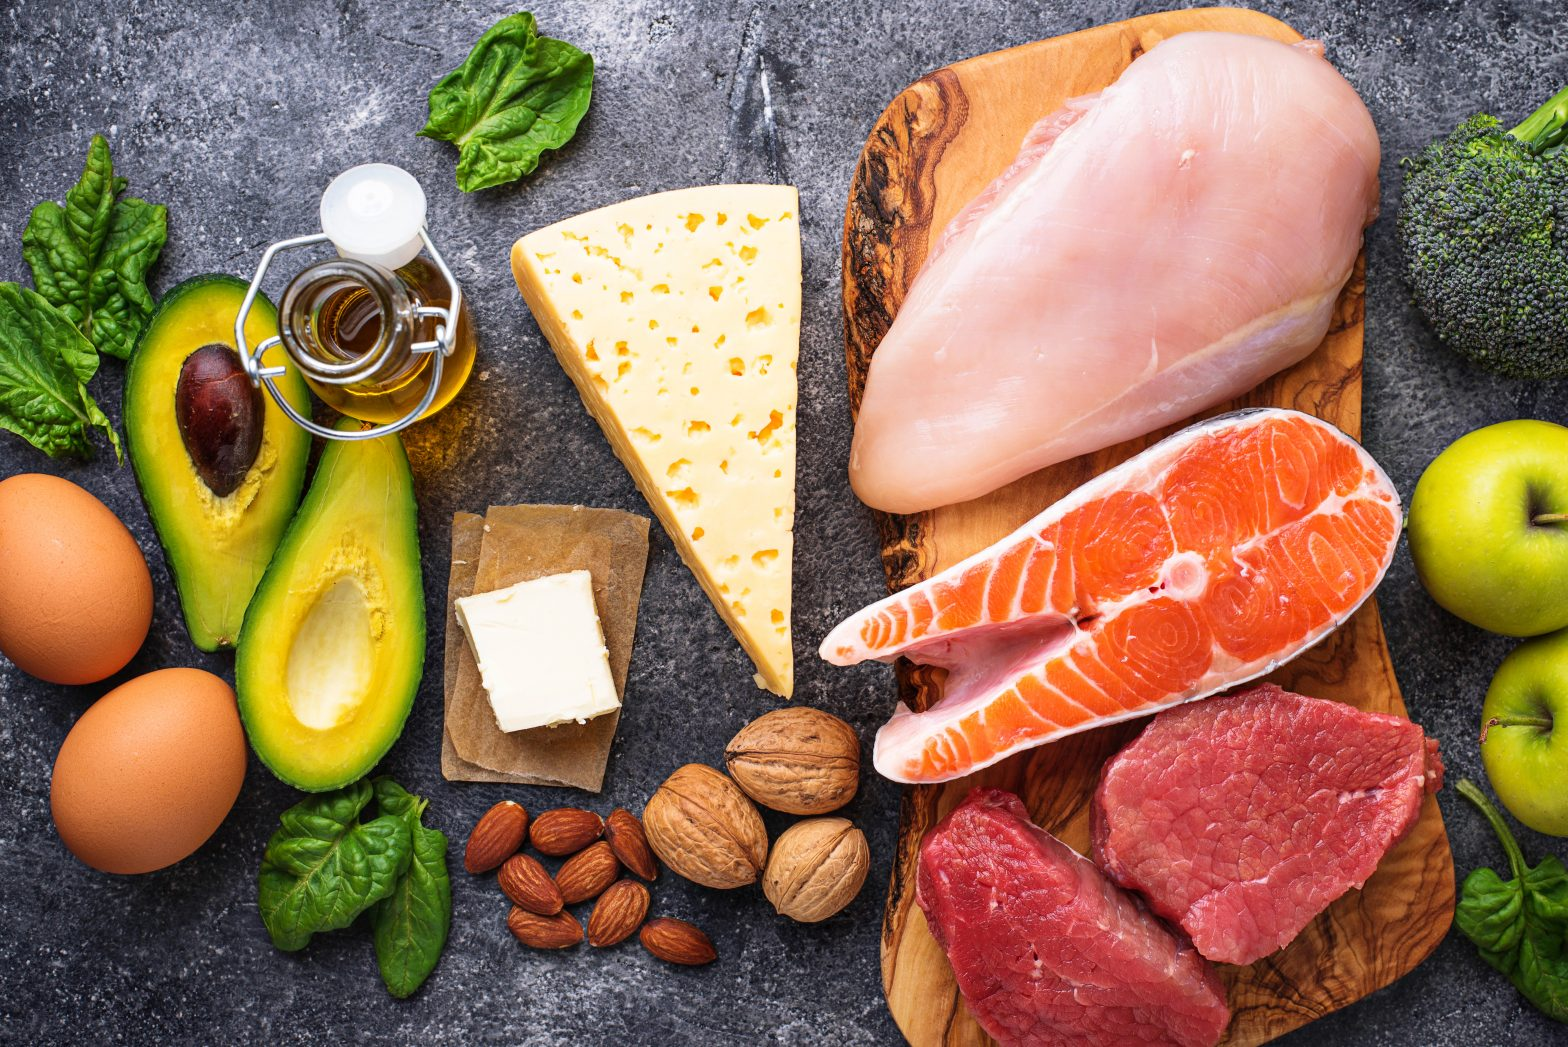 Food board filled with meat, fish, cheese, avocado, eggs, nuts, and dates.